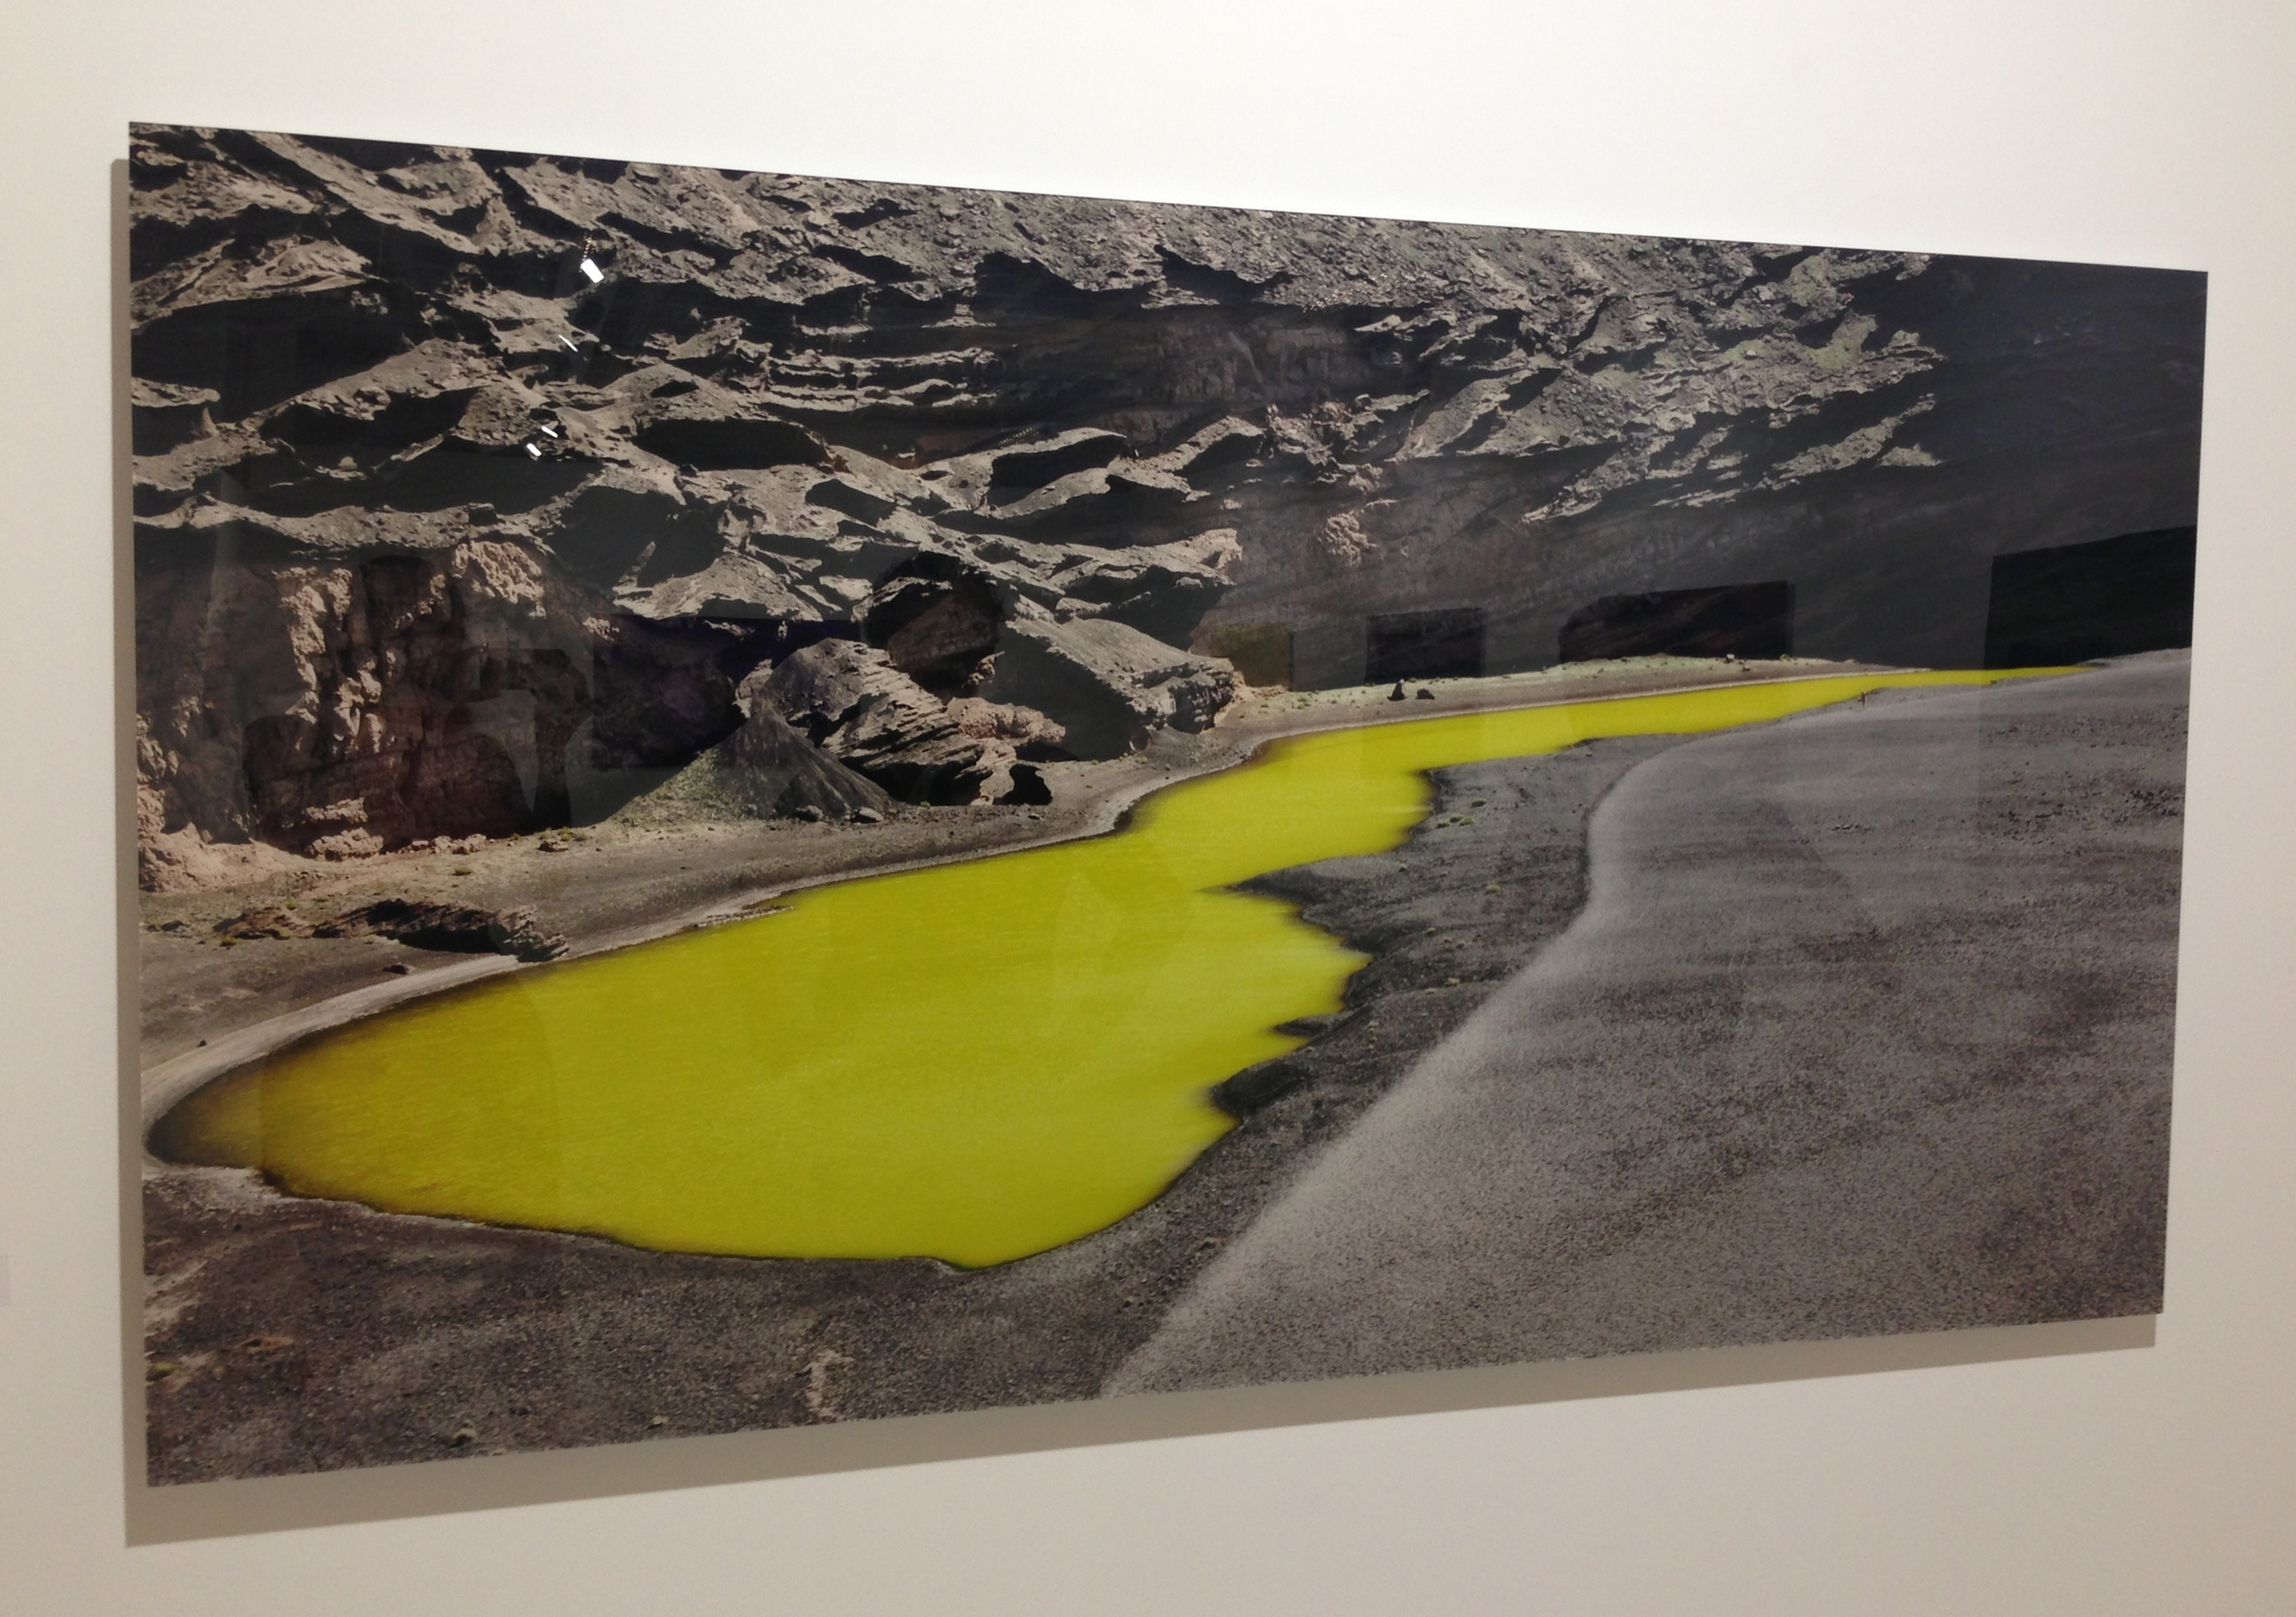 An intense acrylic-mountedphotograph by Monica Sanchez-Robles taken in Lanzarote (the yellow water pond is actually like this in real life)